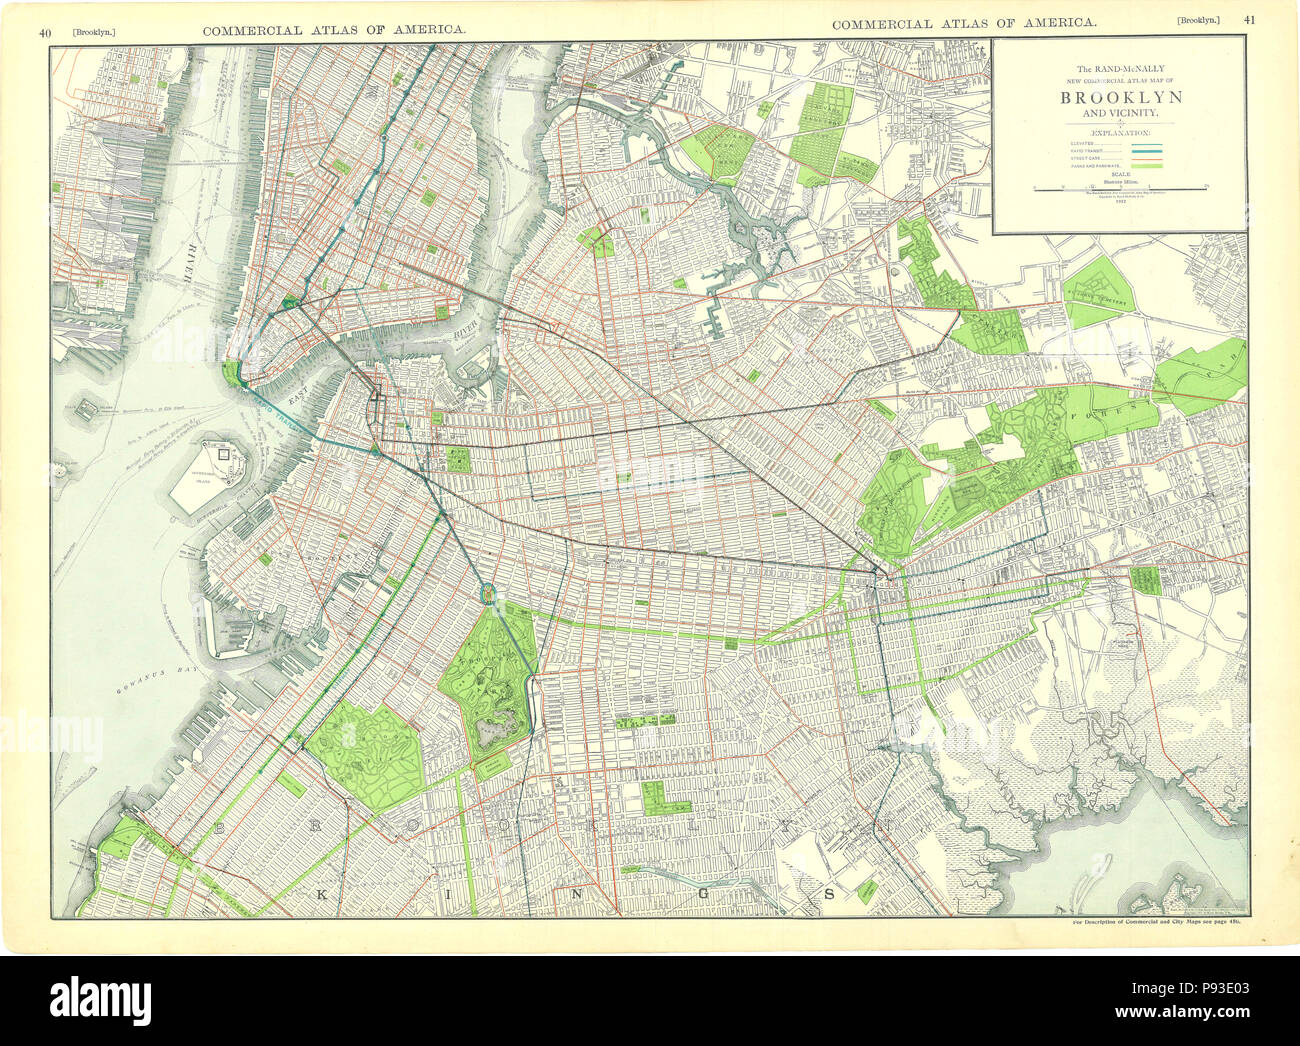 1912-1913 Brooklyn map Stock Photo: 212133155 - Alamy